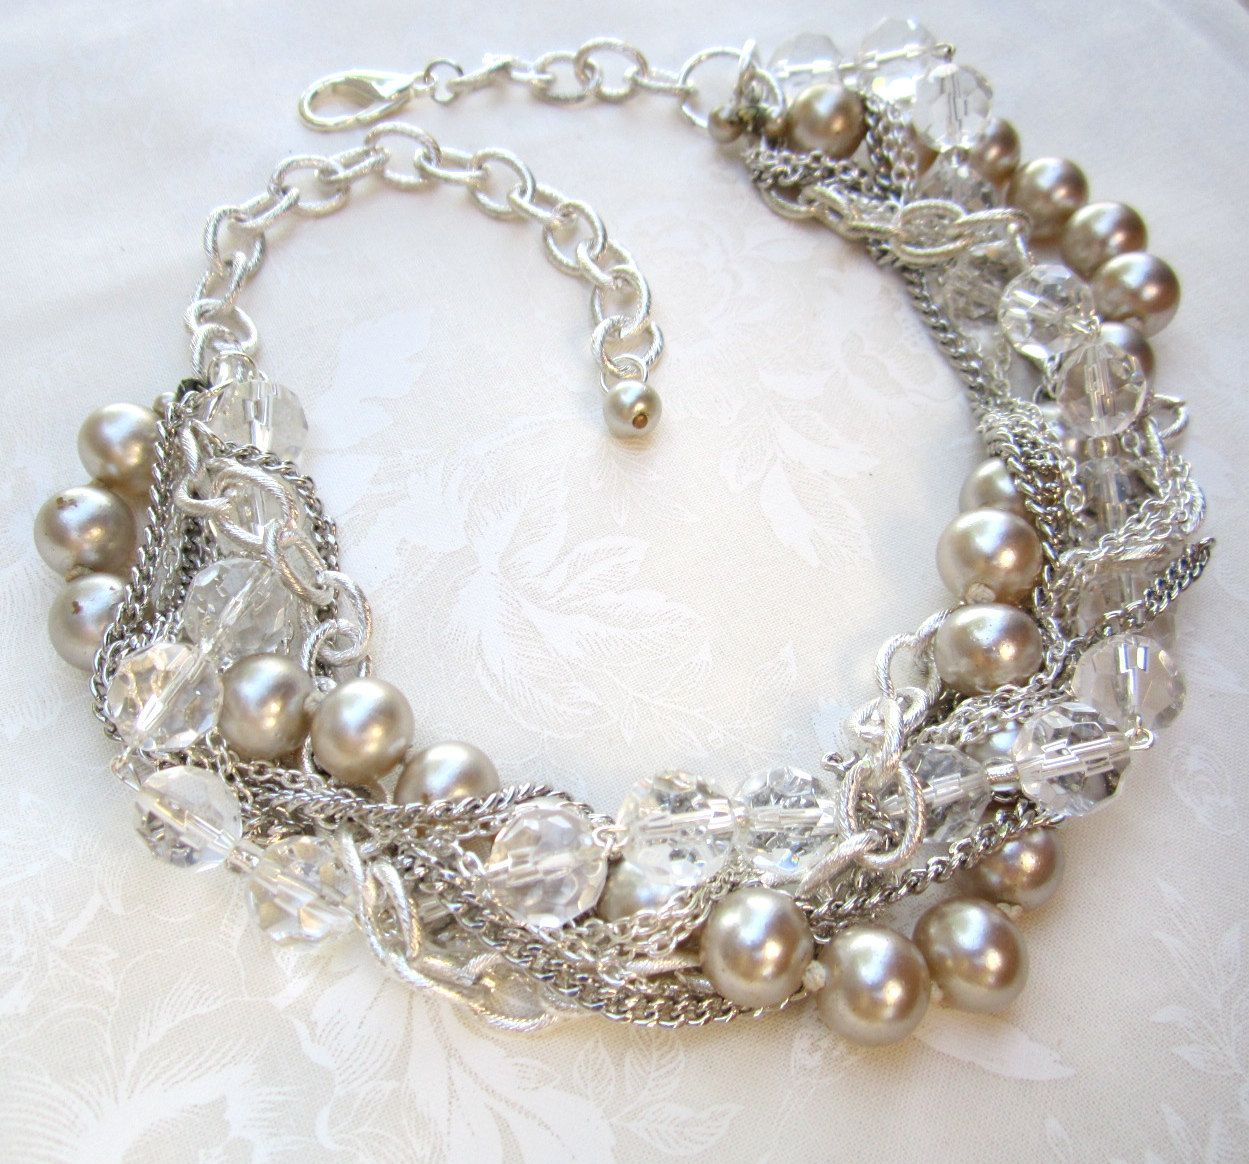 Chunky Wedding Necklace Silver Crystal Pearl Bridal Statement